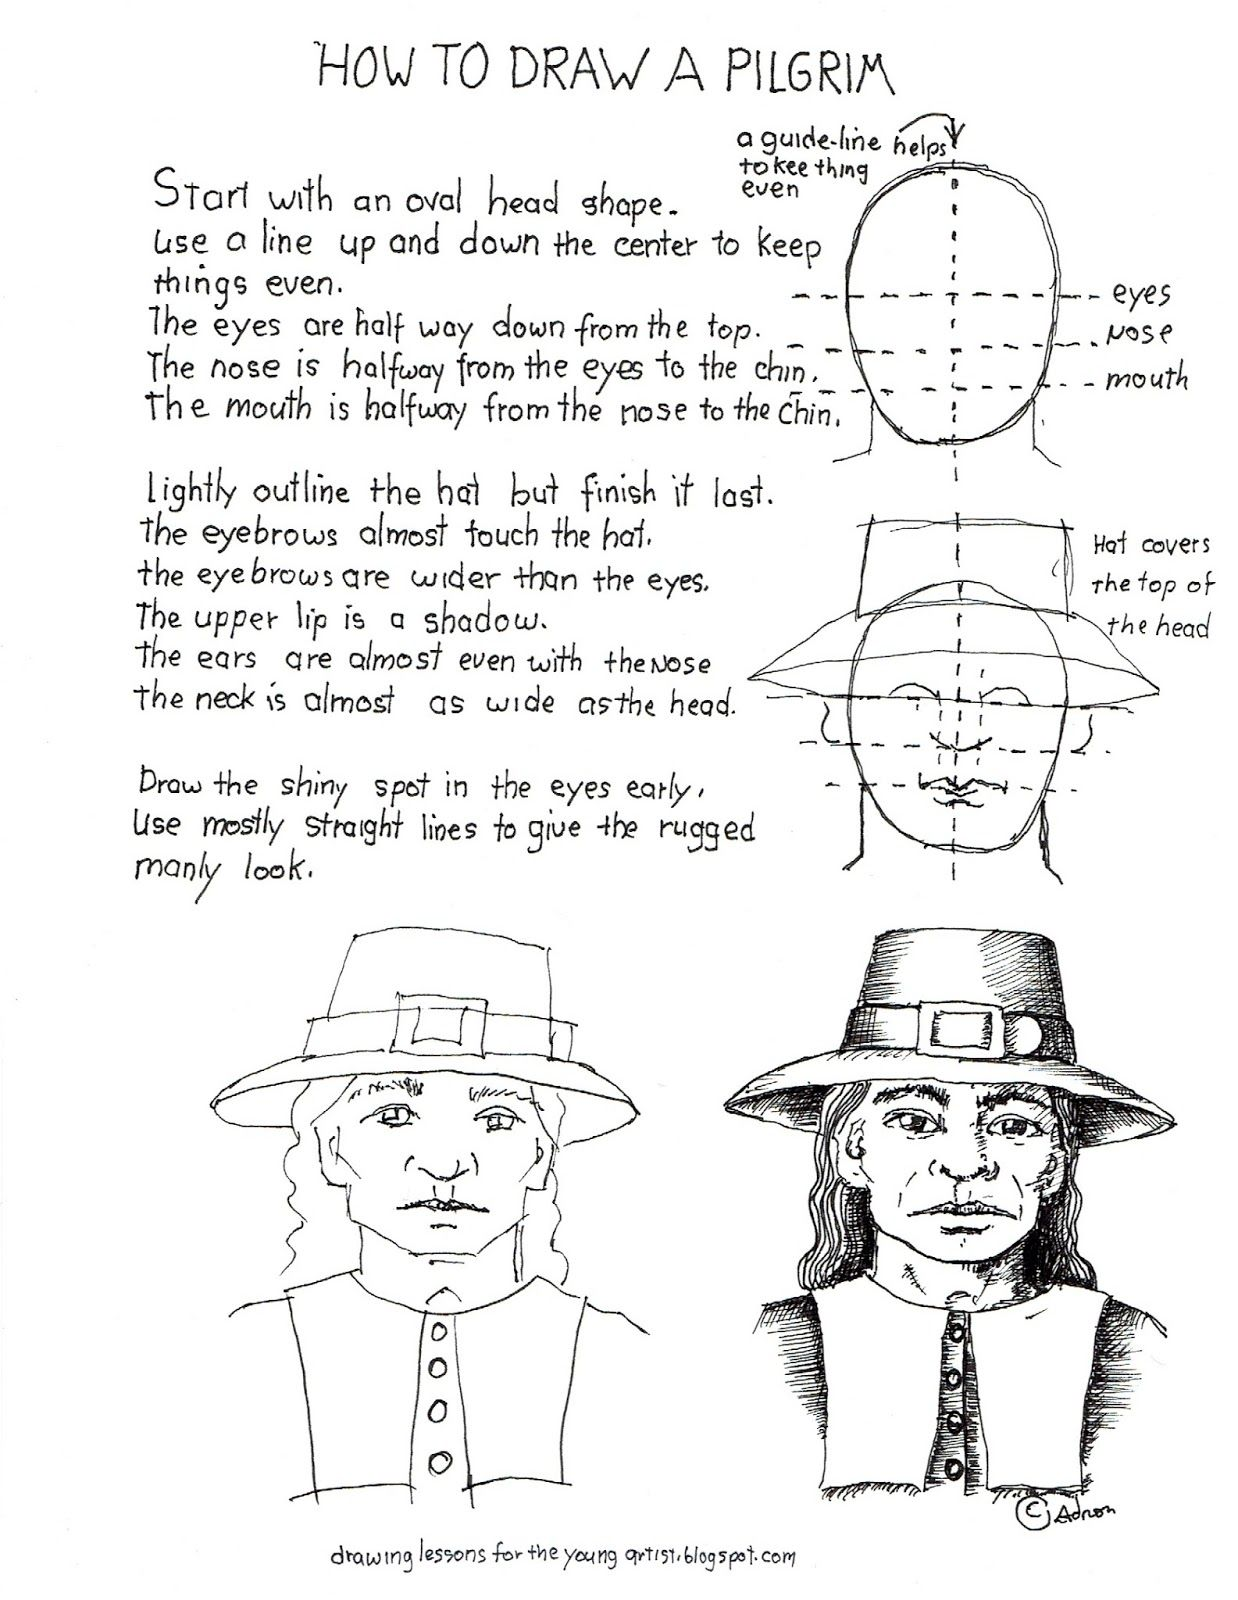 How To Draw A Pilgrim Man S Face Worksheet